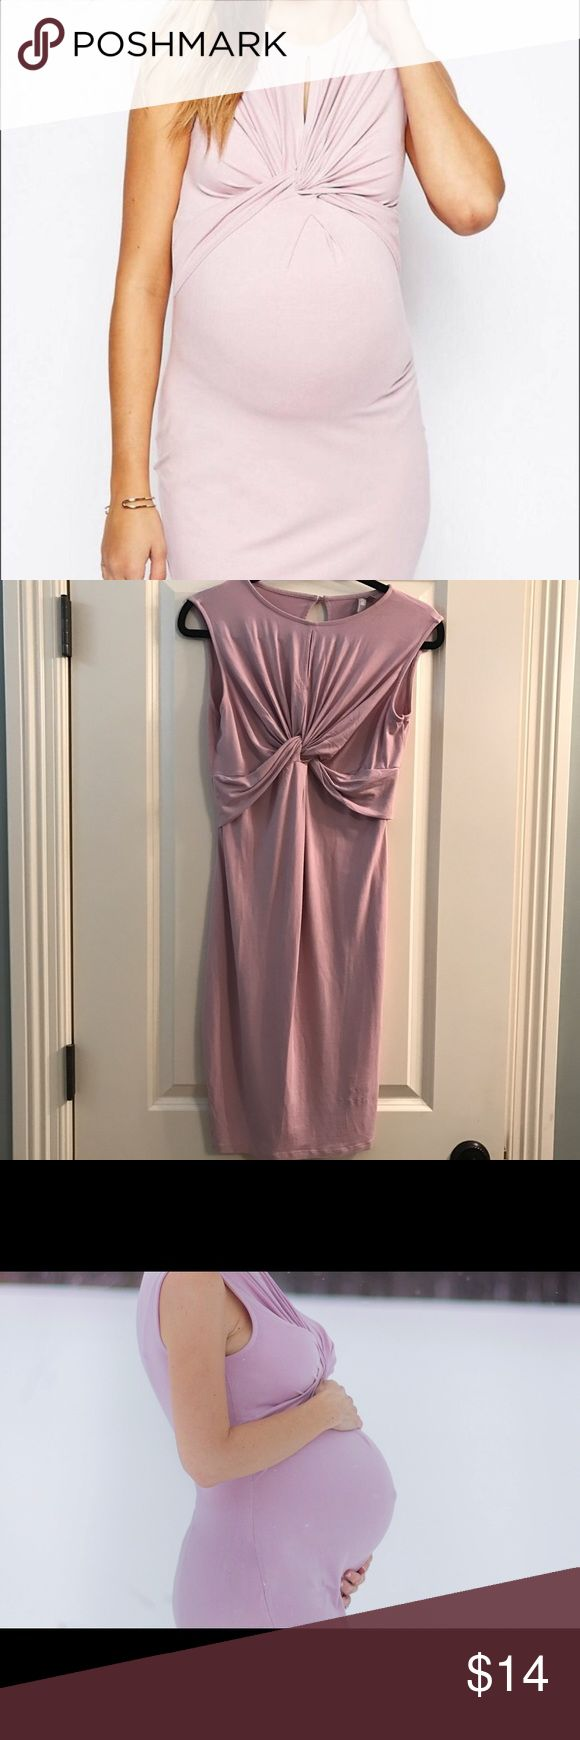 ASOS maternity dress size 4 (US) Pretty asos maternity dress . I wore for my maternity photo shoot. Size 4 . Beautiful pink color! Would look amazing this spring ! Comfy and pretty! ASOS Dresses Midi